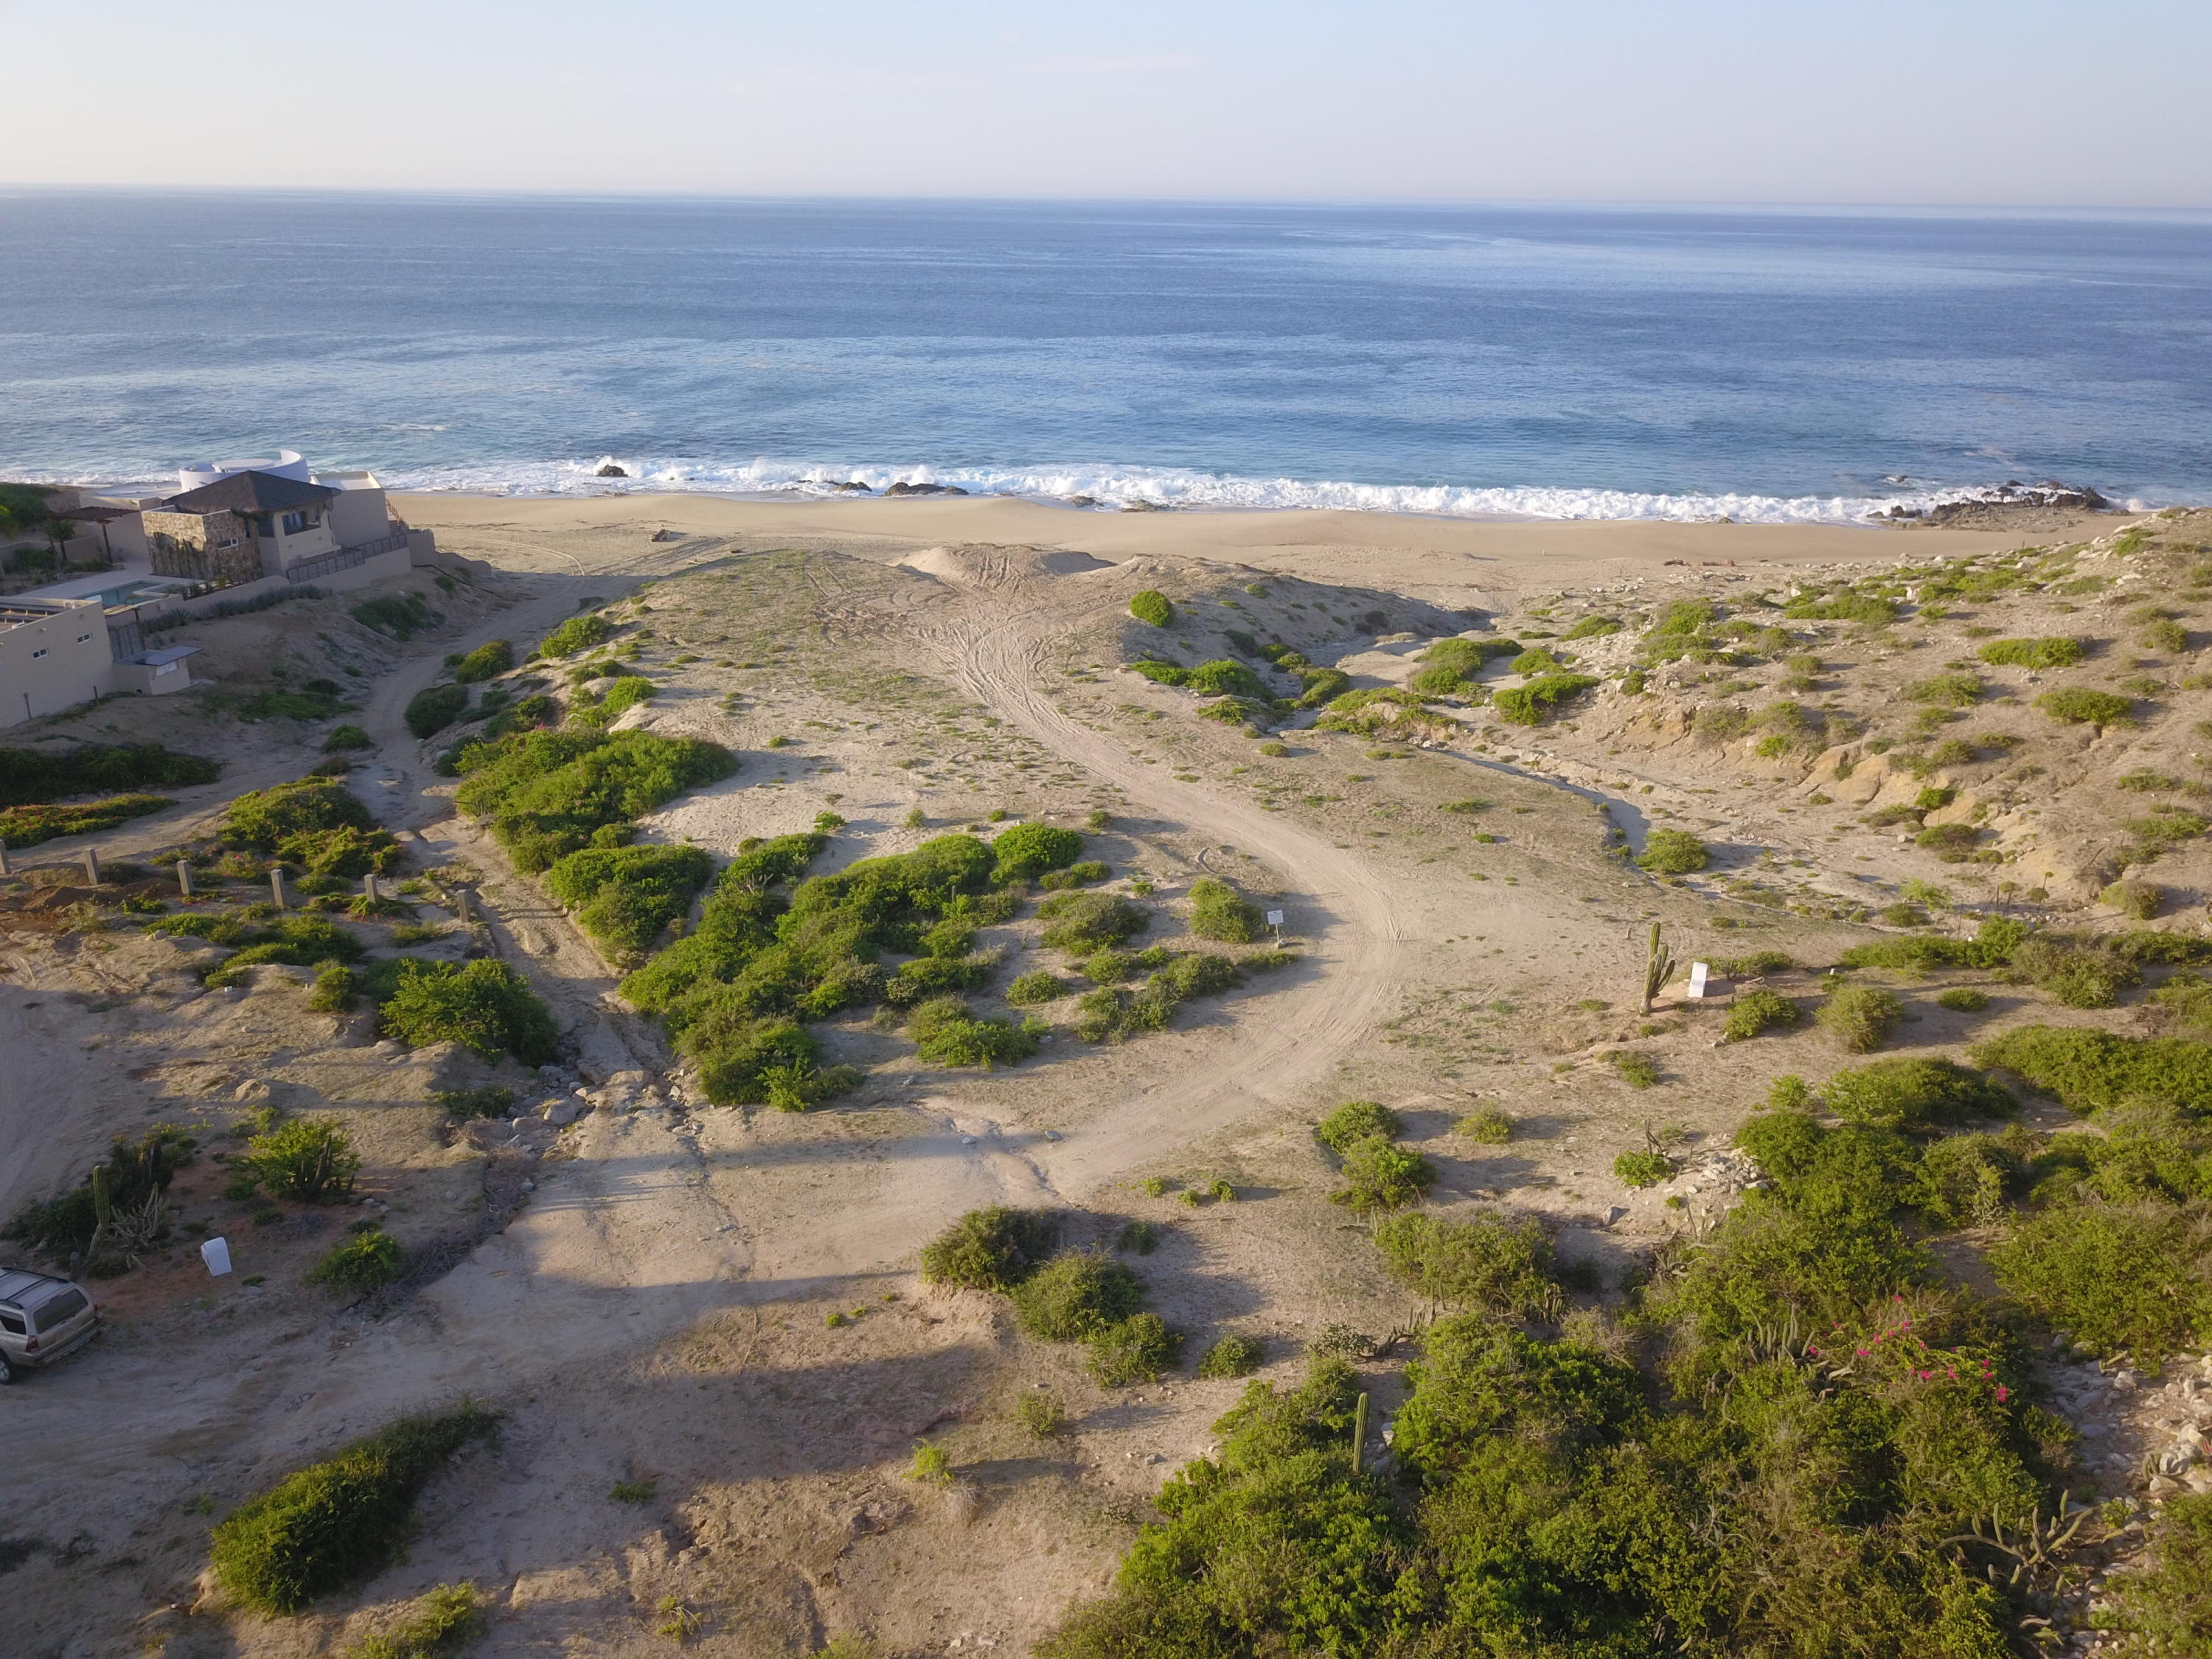 East Cape, ,Land,For Sale,Manzana 1,20-69